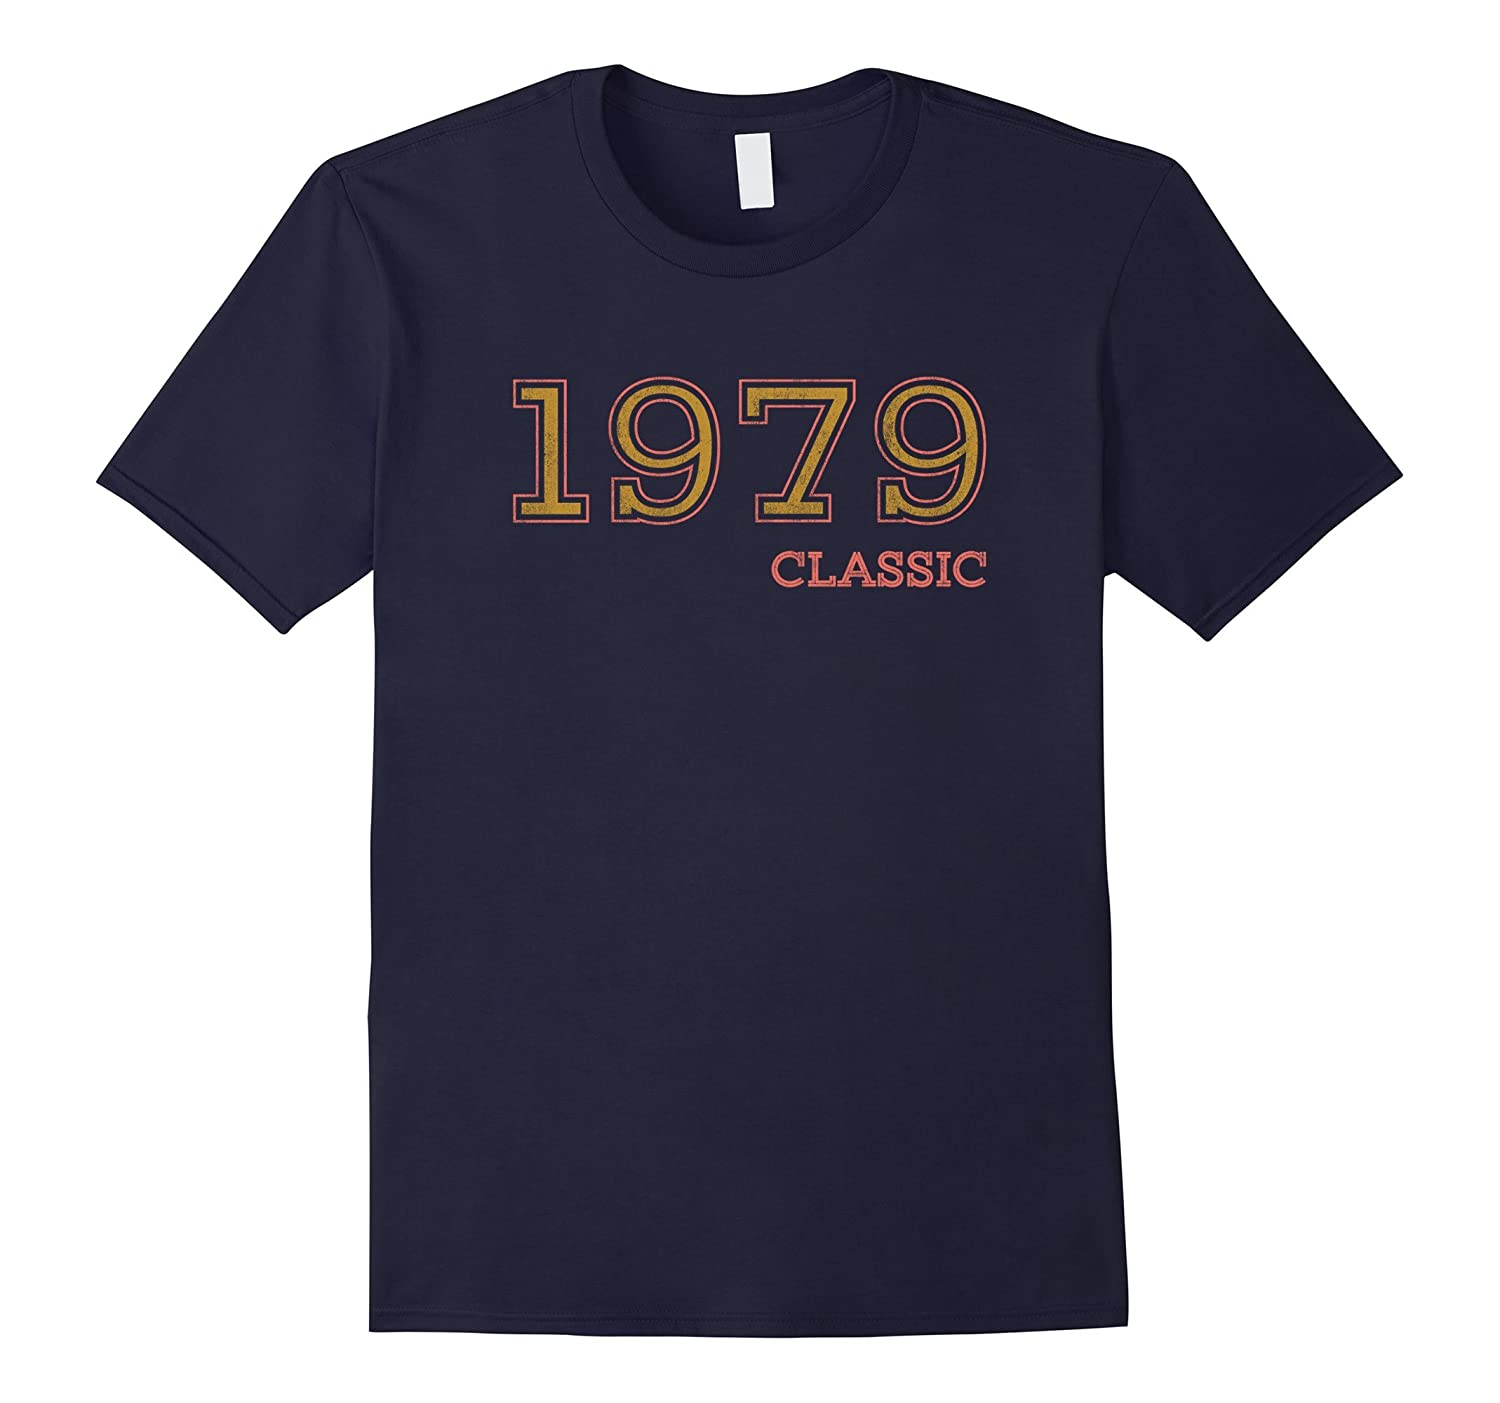 38th Birthday Funny Tshirt, Vintage 1979 Shirt, Gift Idea-FL